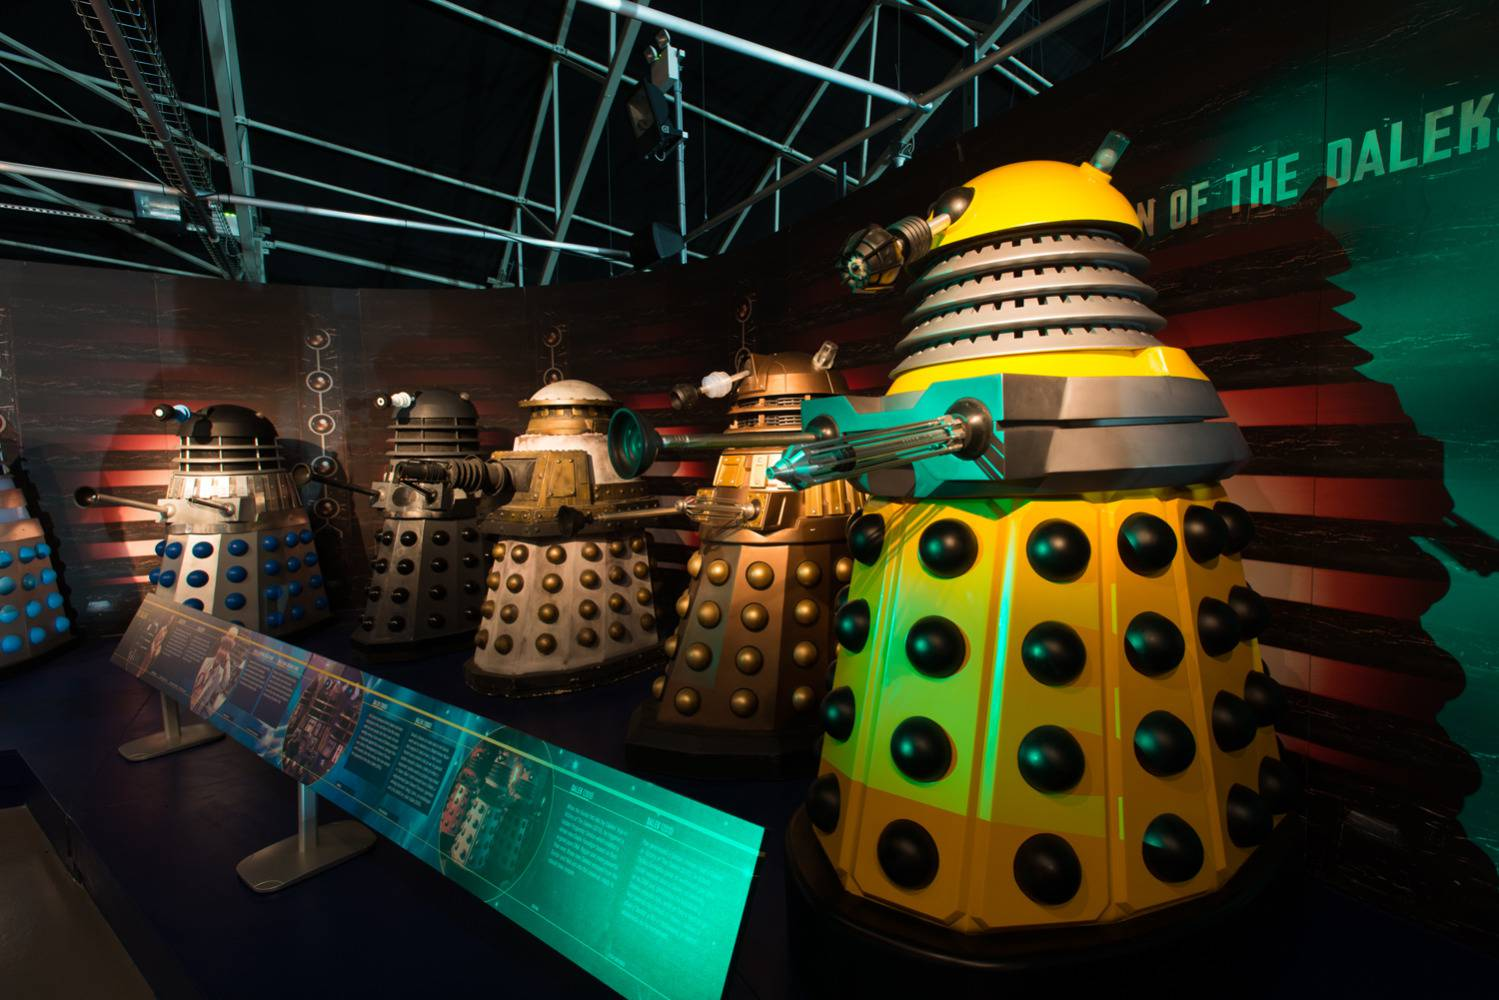 The Dalek line up